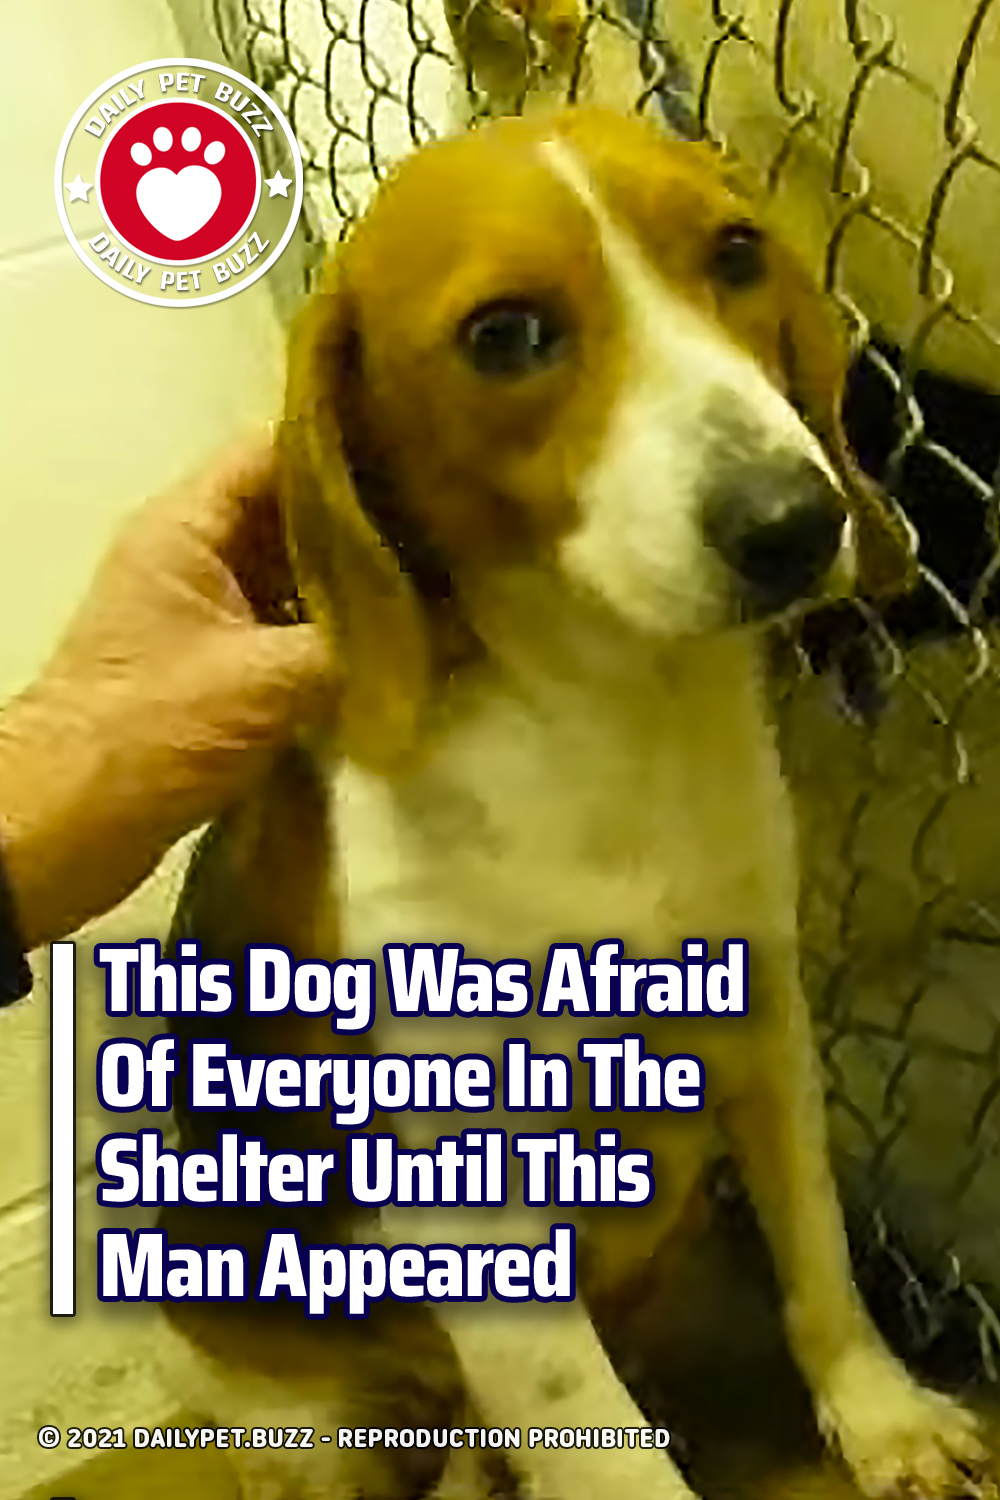 This Dog Was Afraid Of Everyone In The Shelter Until This Man Appeared